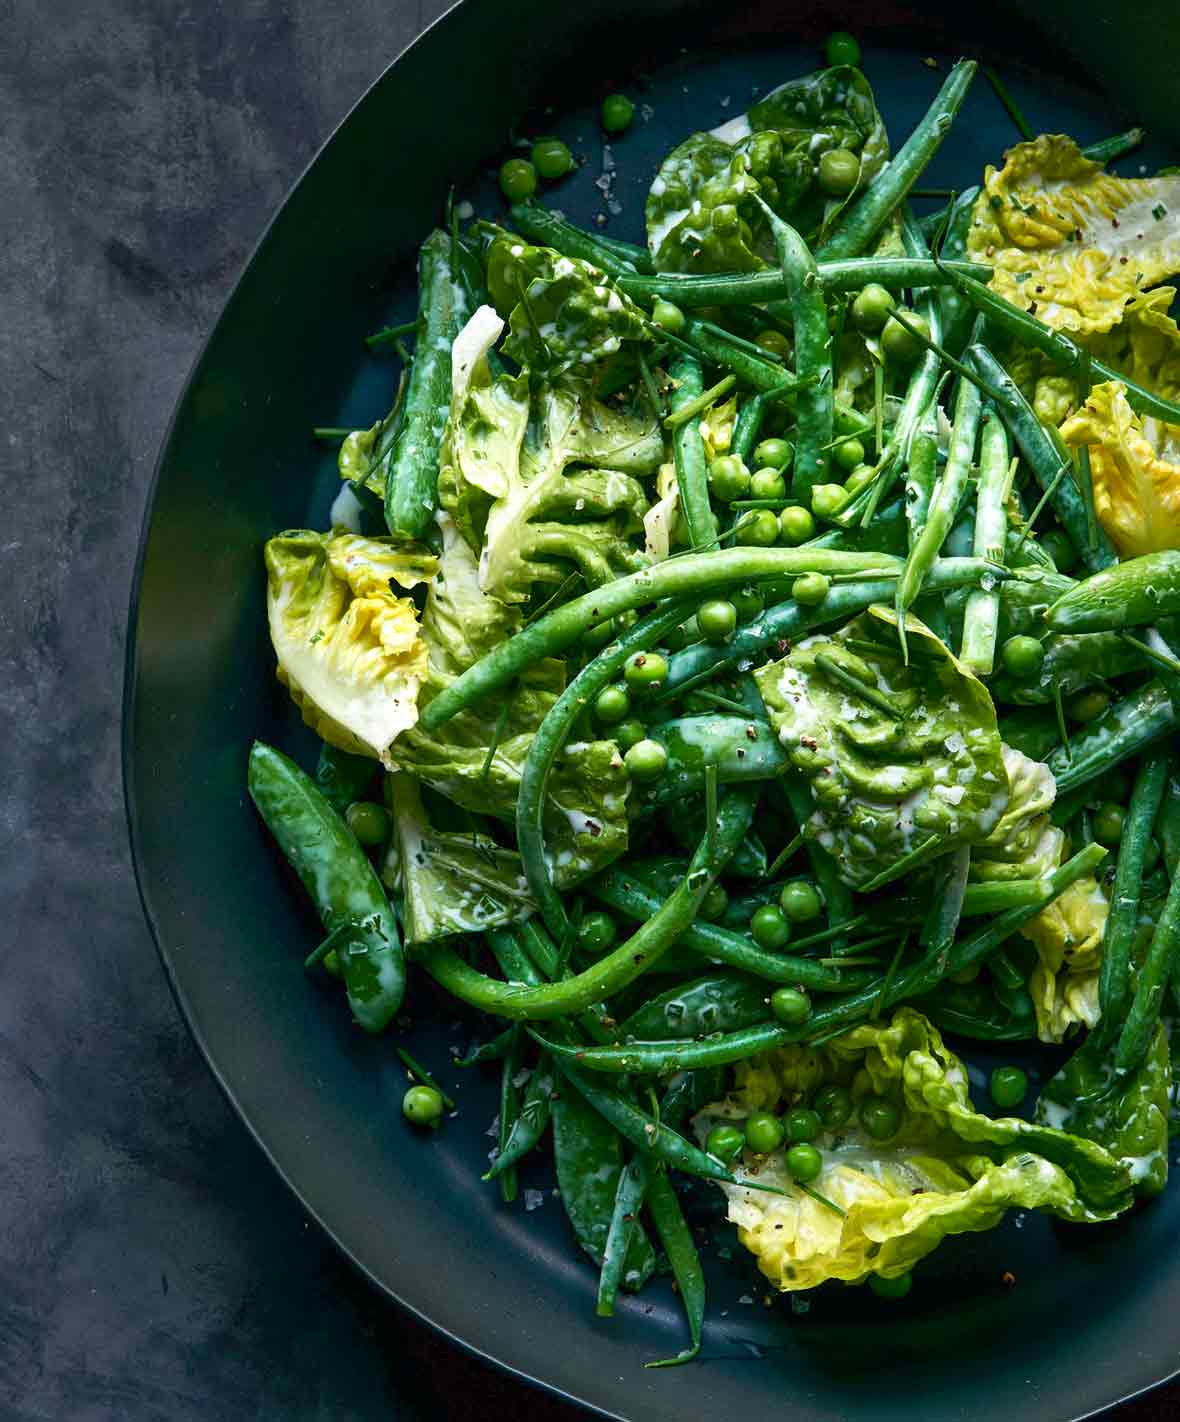 A black bowl fill with green beans, peas, and lettuce tossed with buttermilk ranch dressing